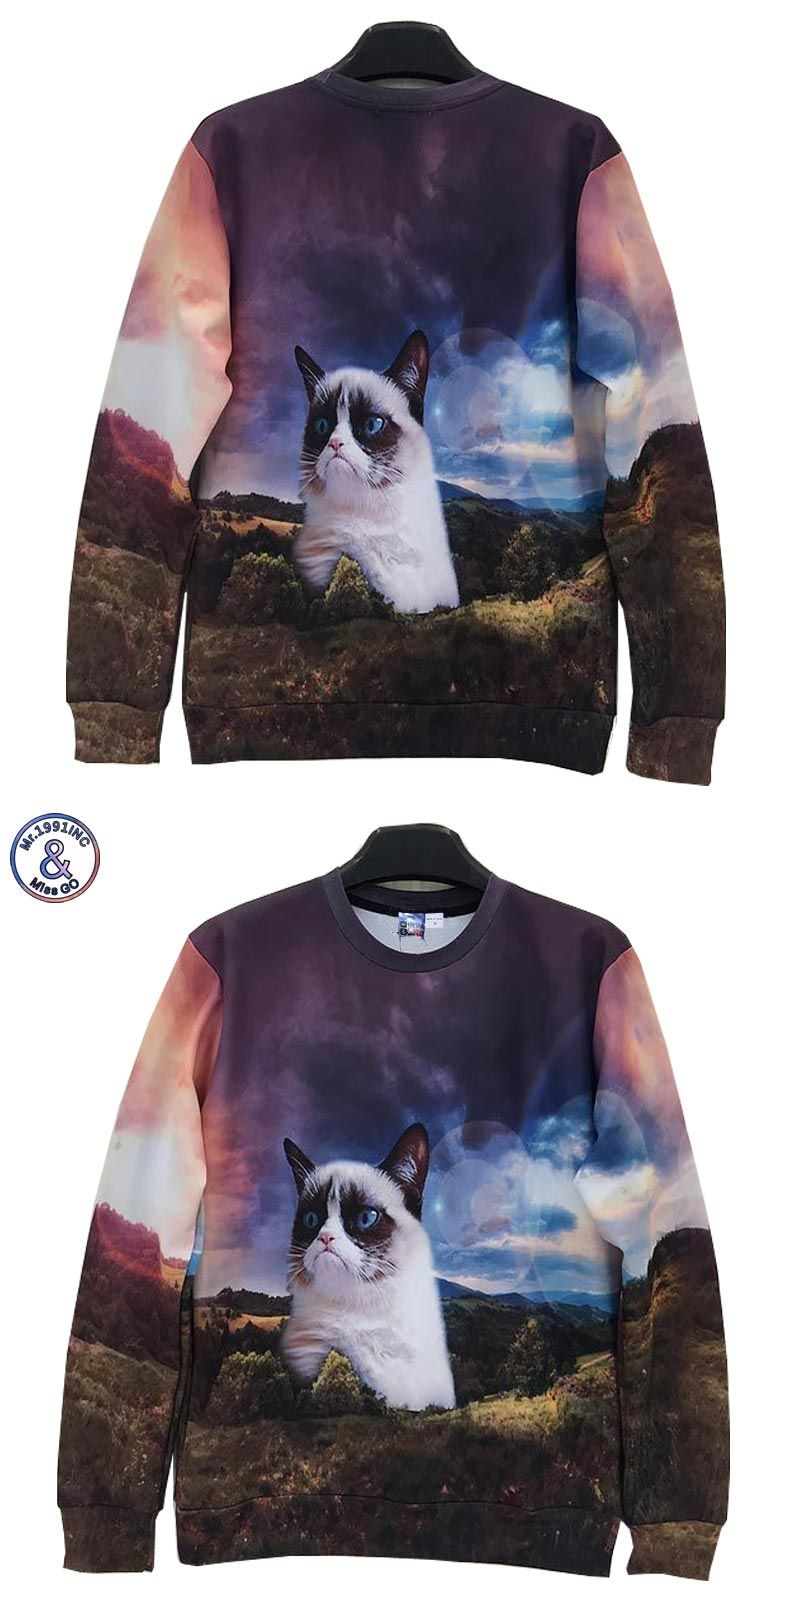 Hoodies & Sweatshirts New Fashion Cute French Bulldog Print 3d Hoodies Pullover Men Women Capless Sweatshirt Casual Long Sleeve 3d Hoodie Clothes Tops